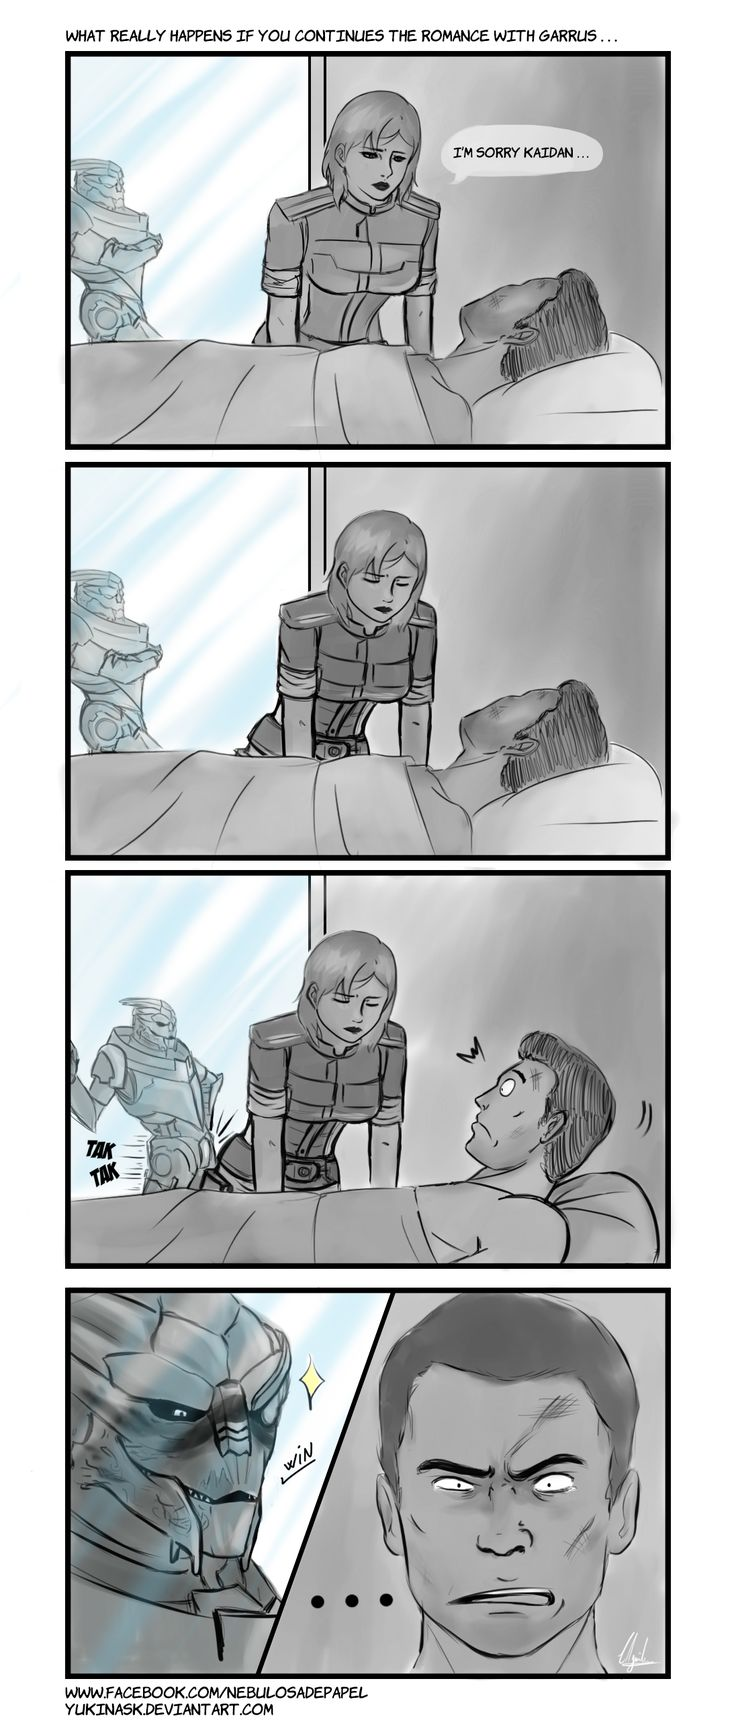 Hospital - Garrus and Kaidan by YukinaSk / Oh lol xD